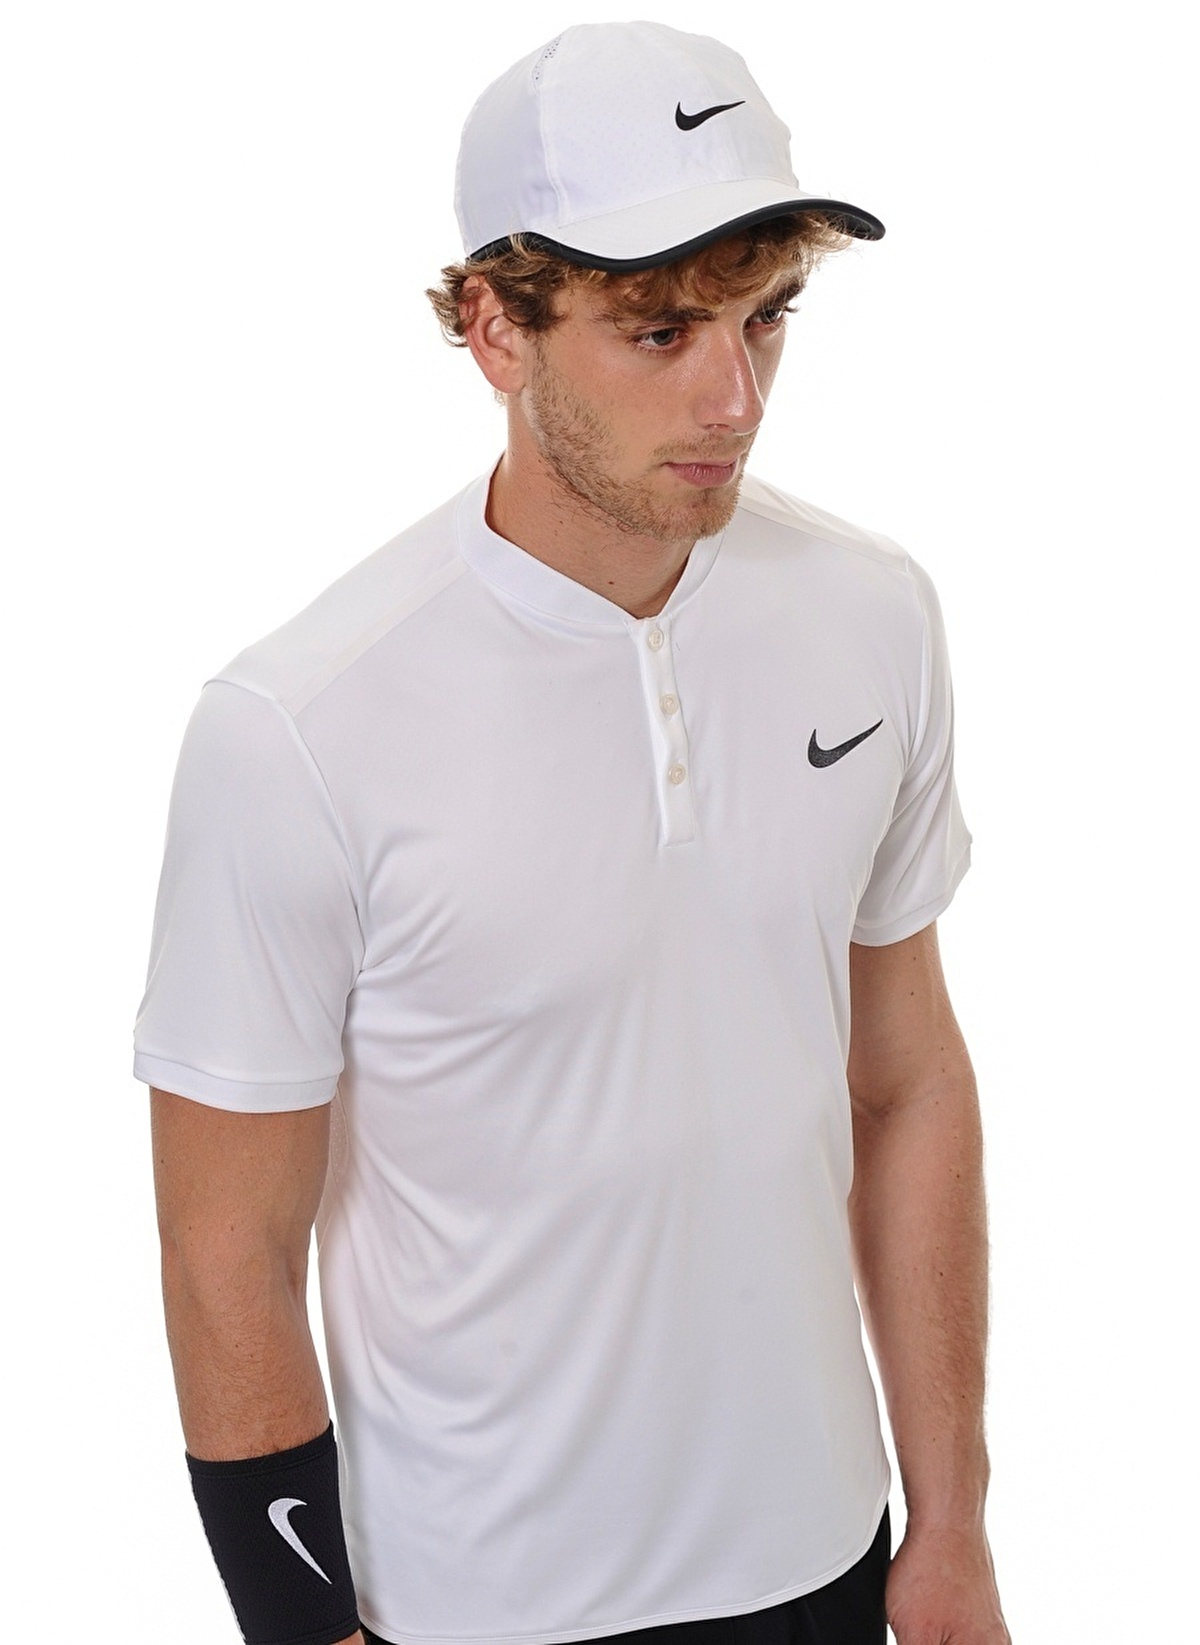 Nike unisex apka 679421 100 nike featherlight cap for 43591 white cap terrace